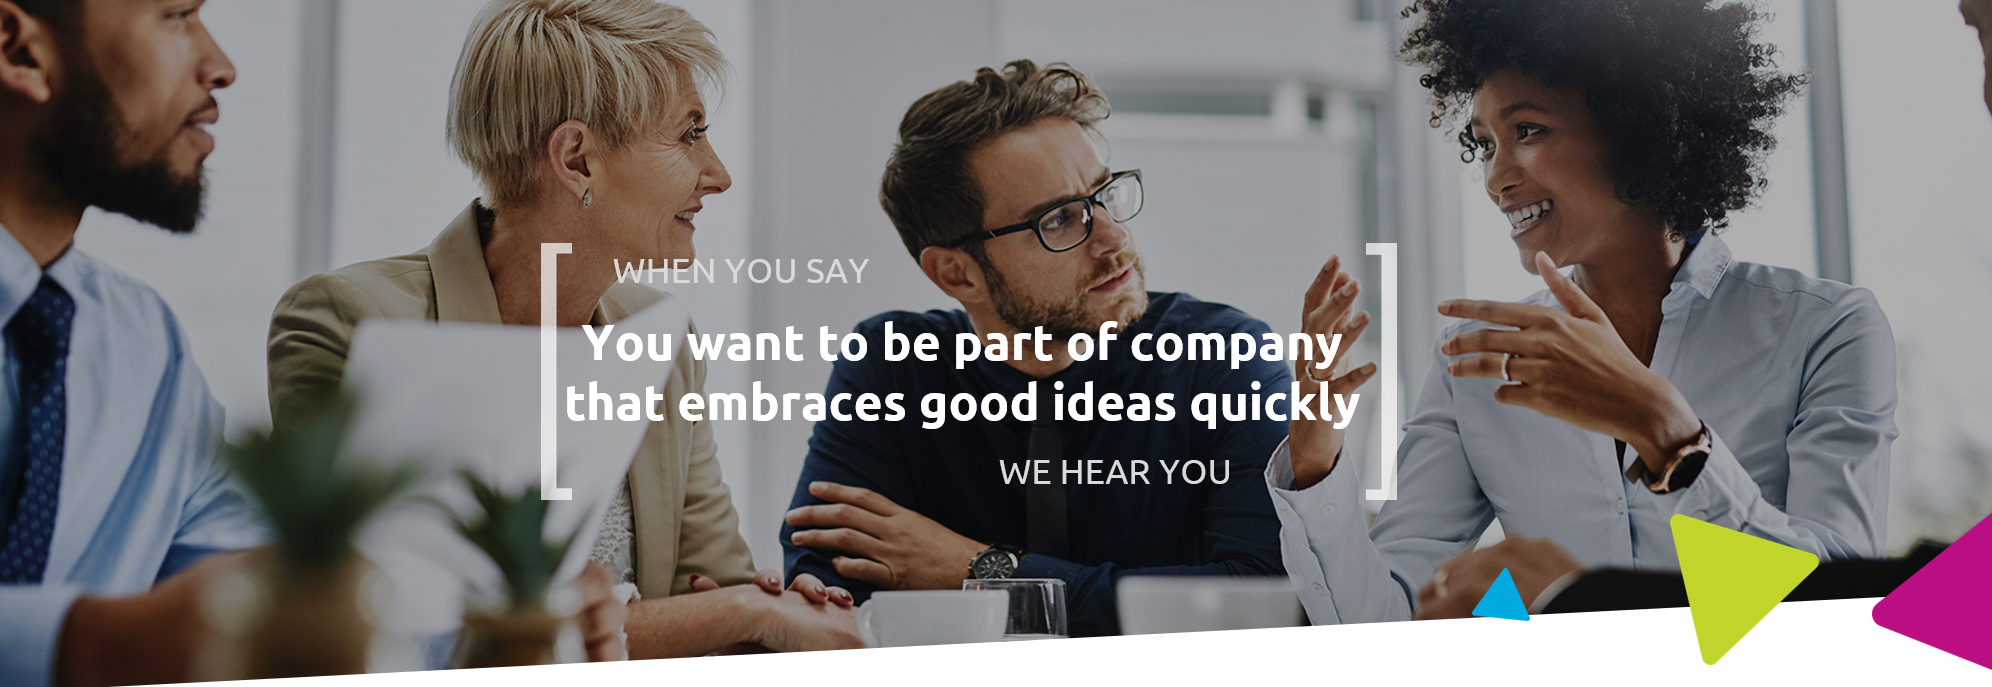 When you say you want to be part of company that embraces good ideas quickly, we hear you